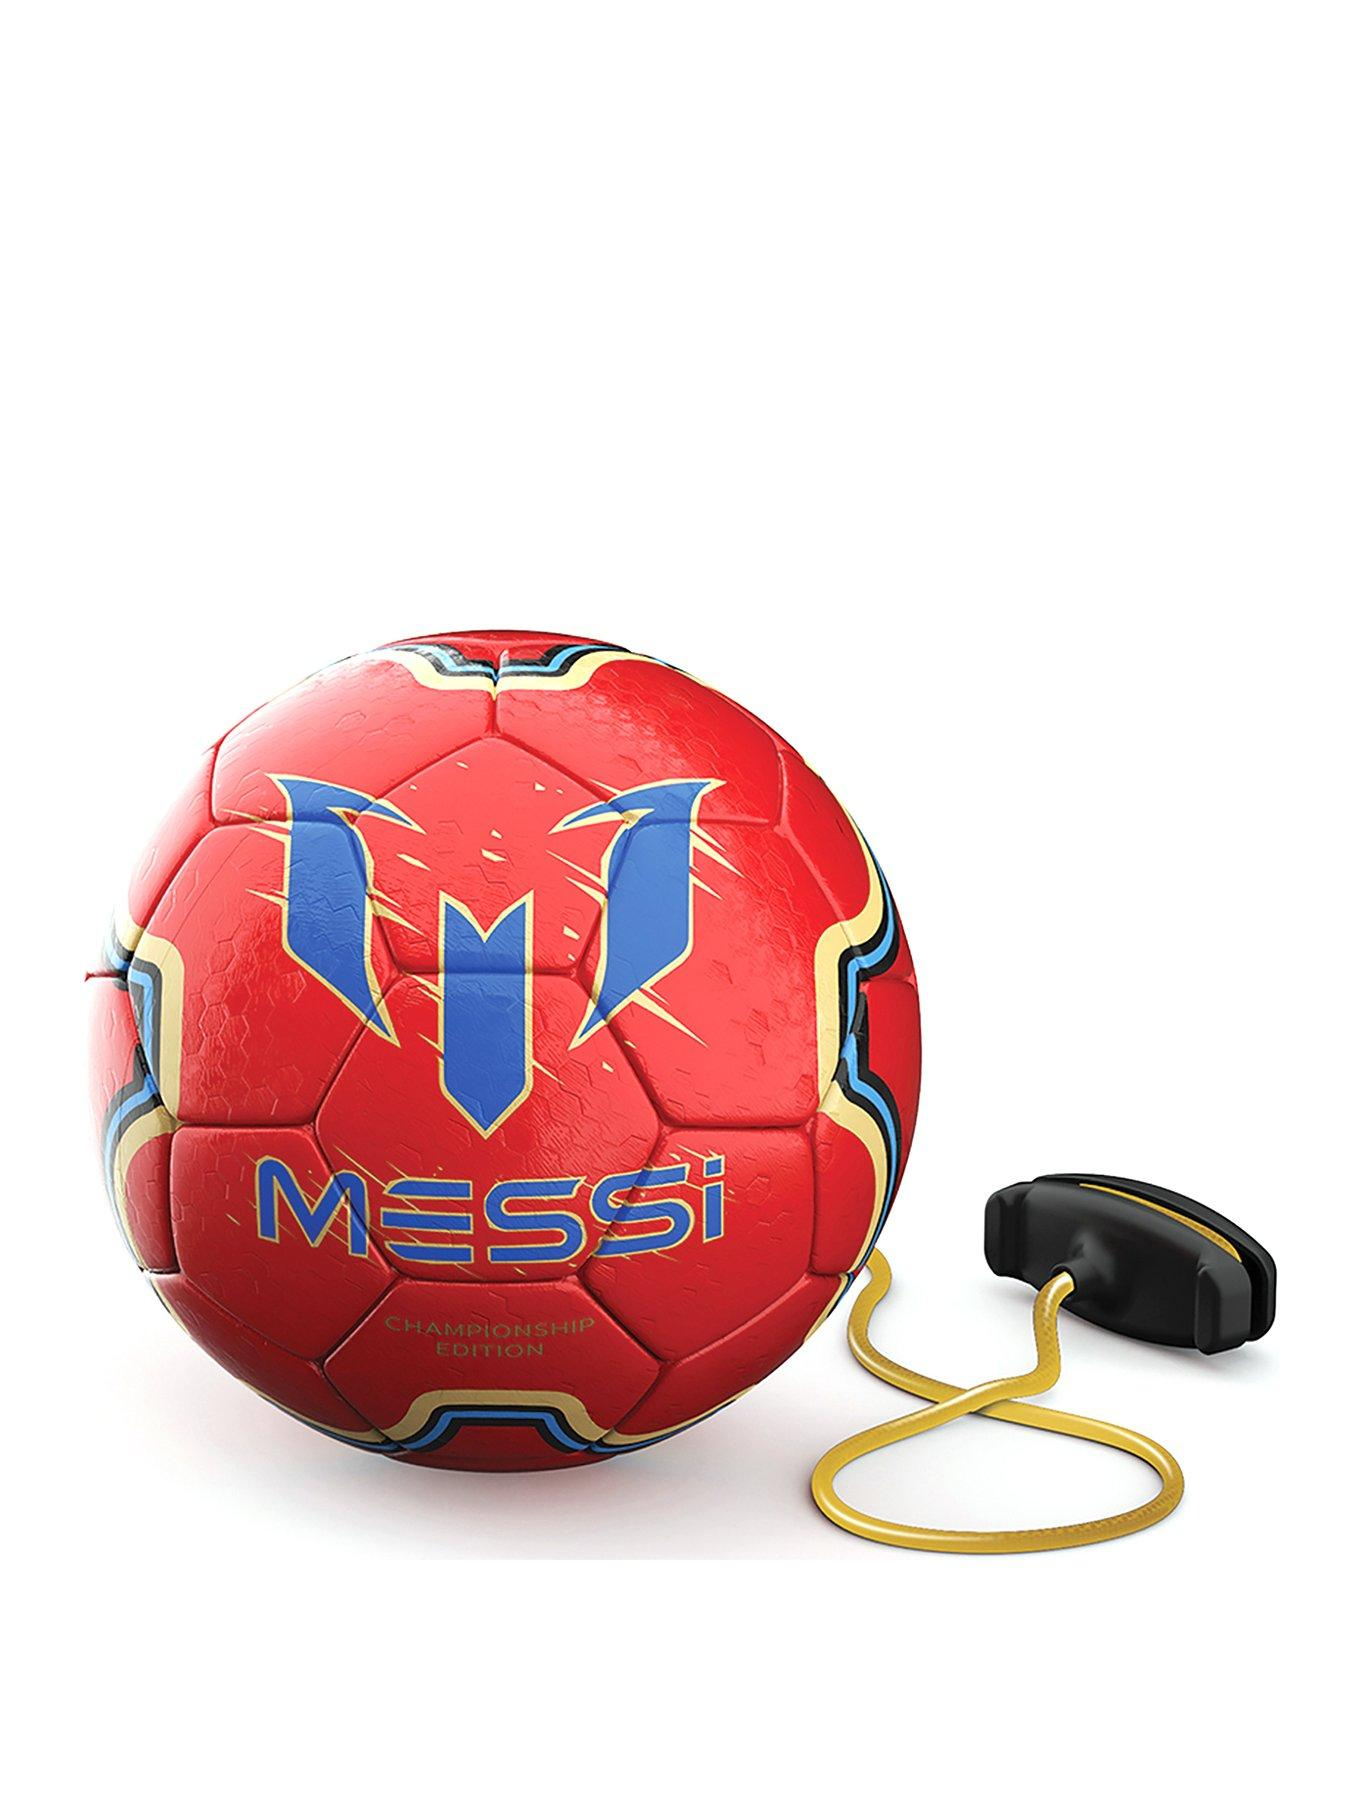 Messi MET24100 2 in 1 Soft Touch Training Ball Refresh Red